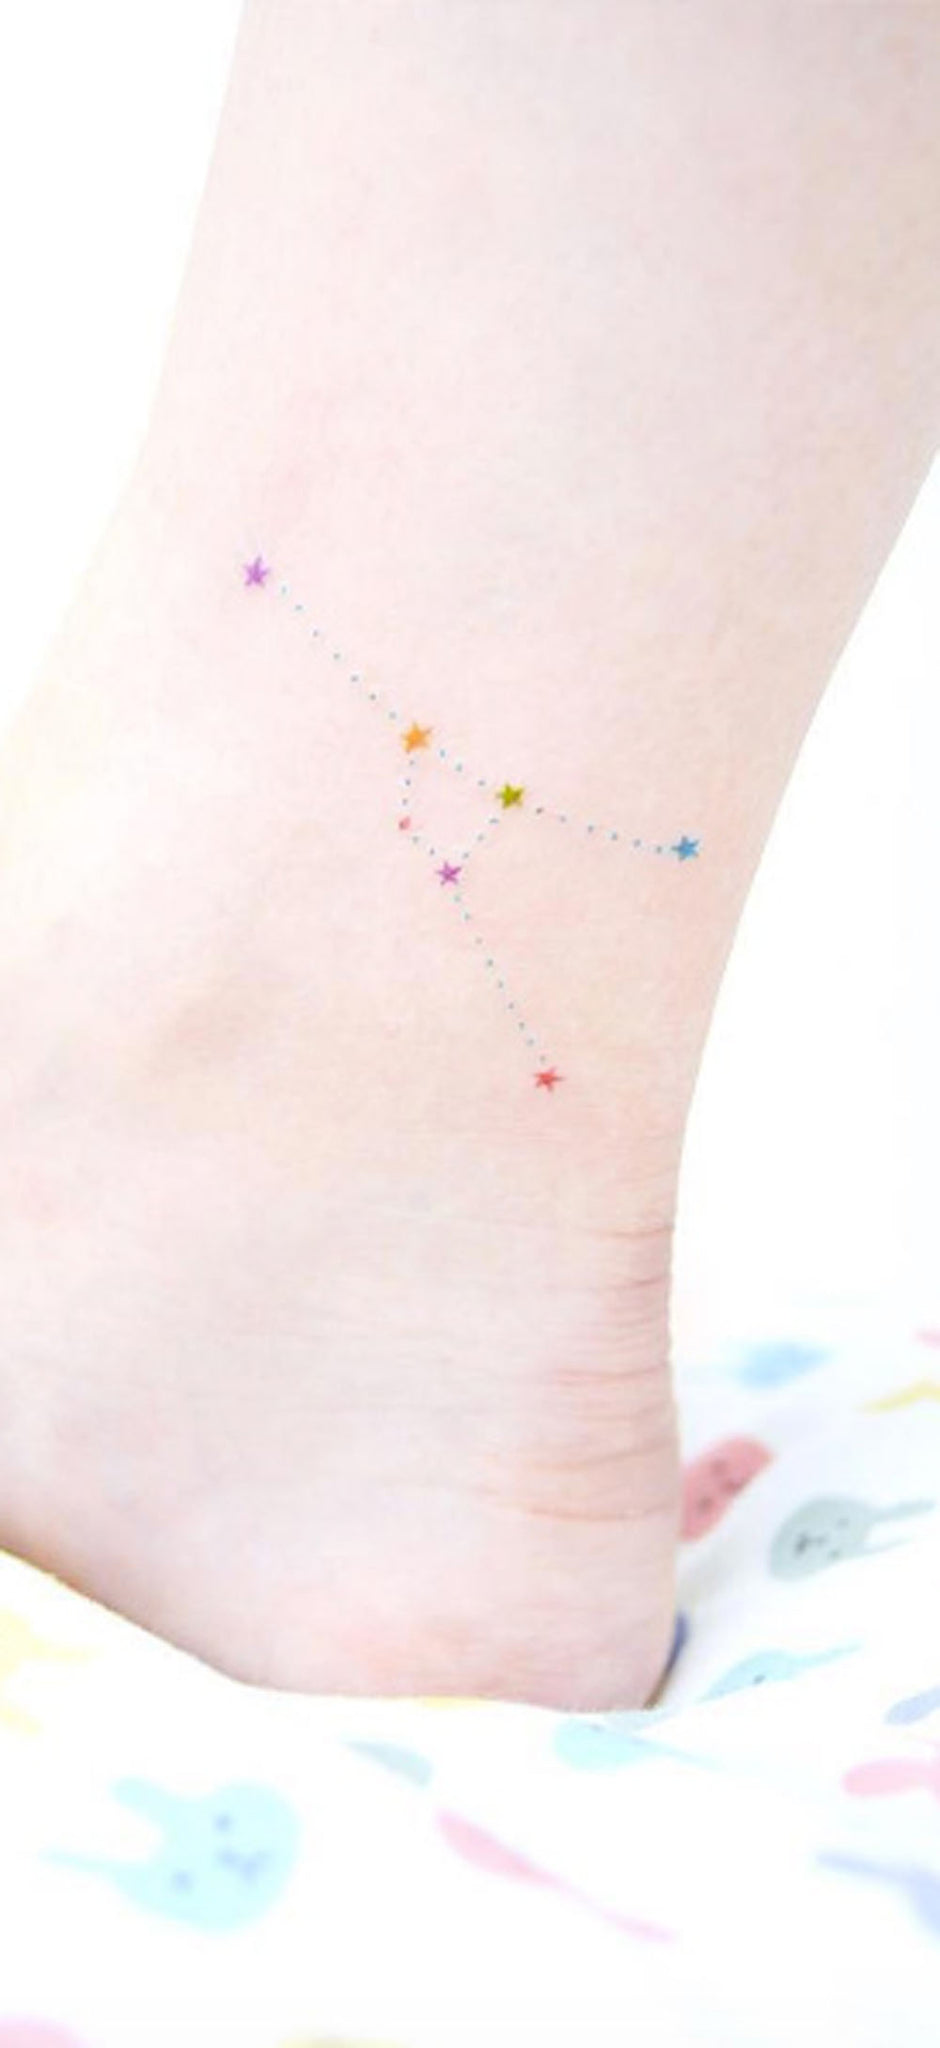 Unique Watercolor Constellation Ankle Foot Leg Tattoo Ideas for Women -  Única constelación de acuarela tobillo Tattoo Ideas para mujeres - www.MyBodiArt.com